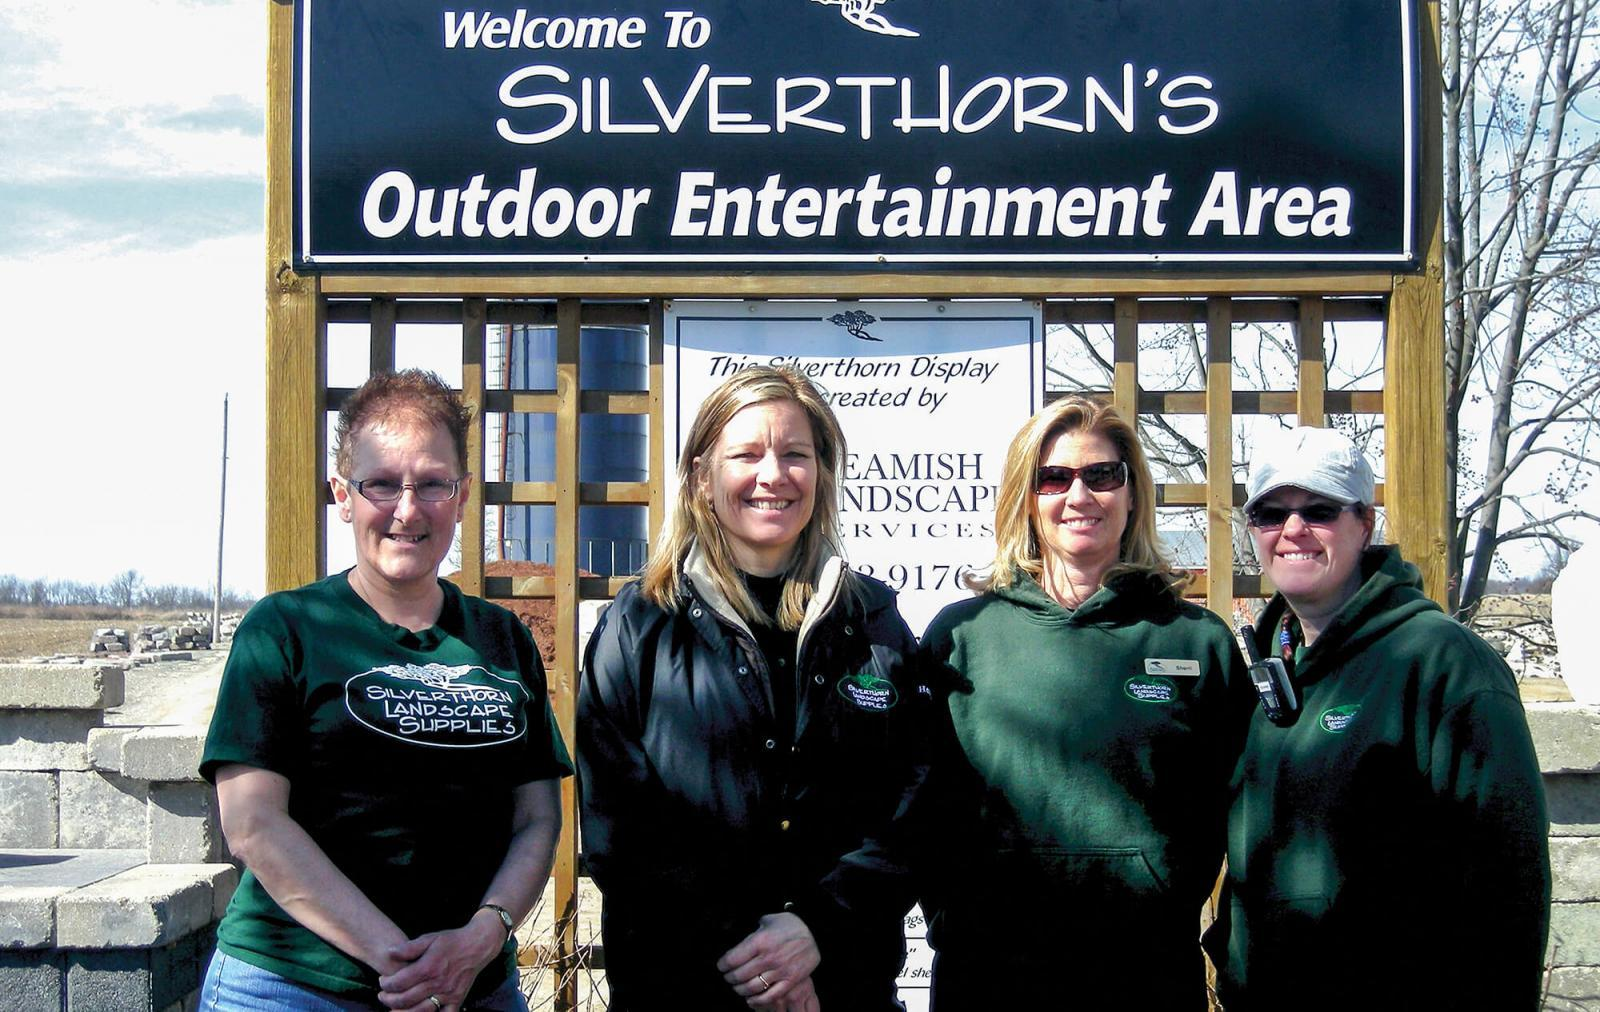 Silverthorn Landscape Supplies in St. Thomas hosted a contractor appreciation event. From left, Janet Peters, Hetty Teuber, Sherri Stiep and Deanne Tillotson.